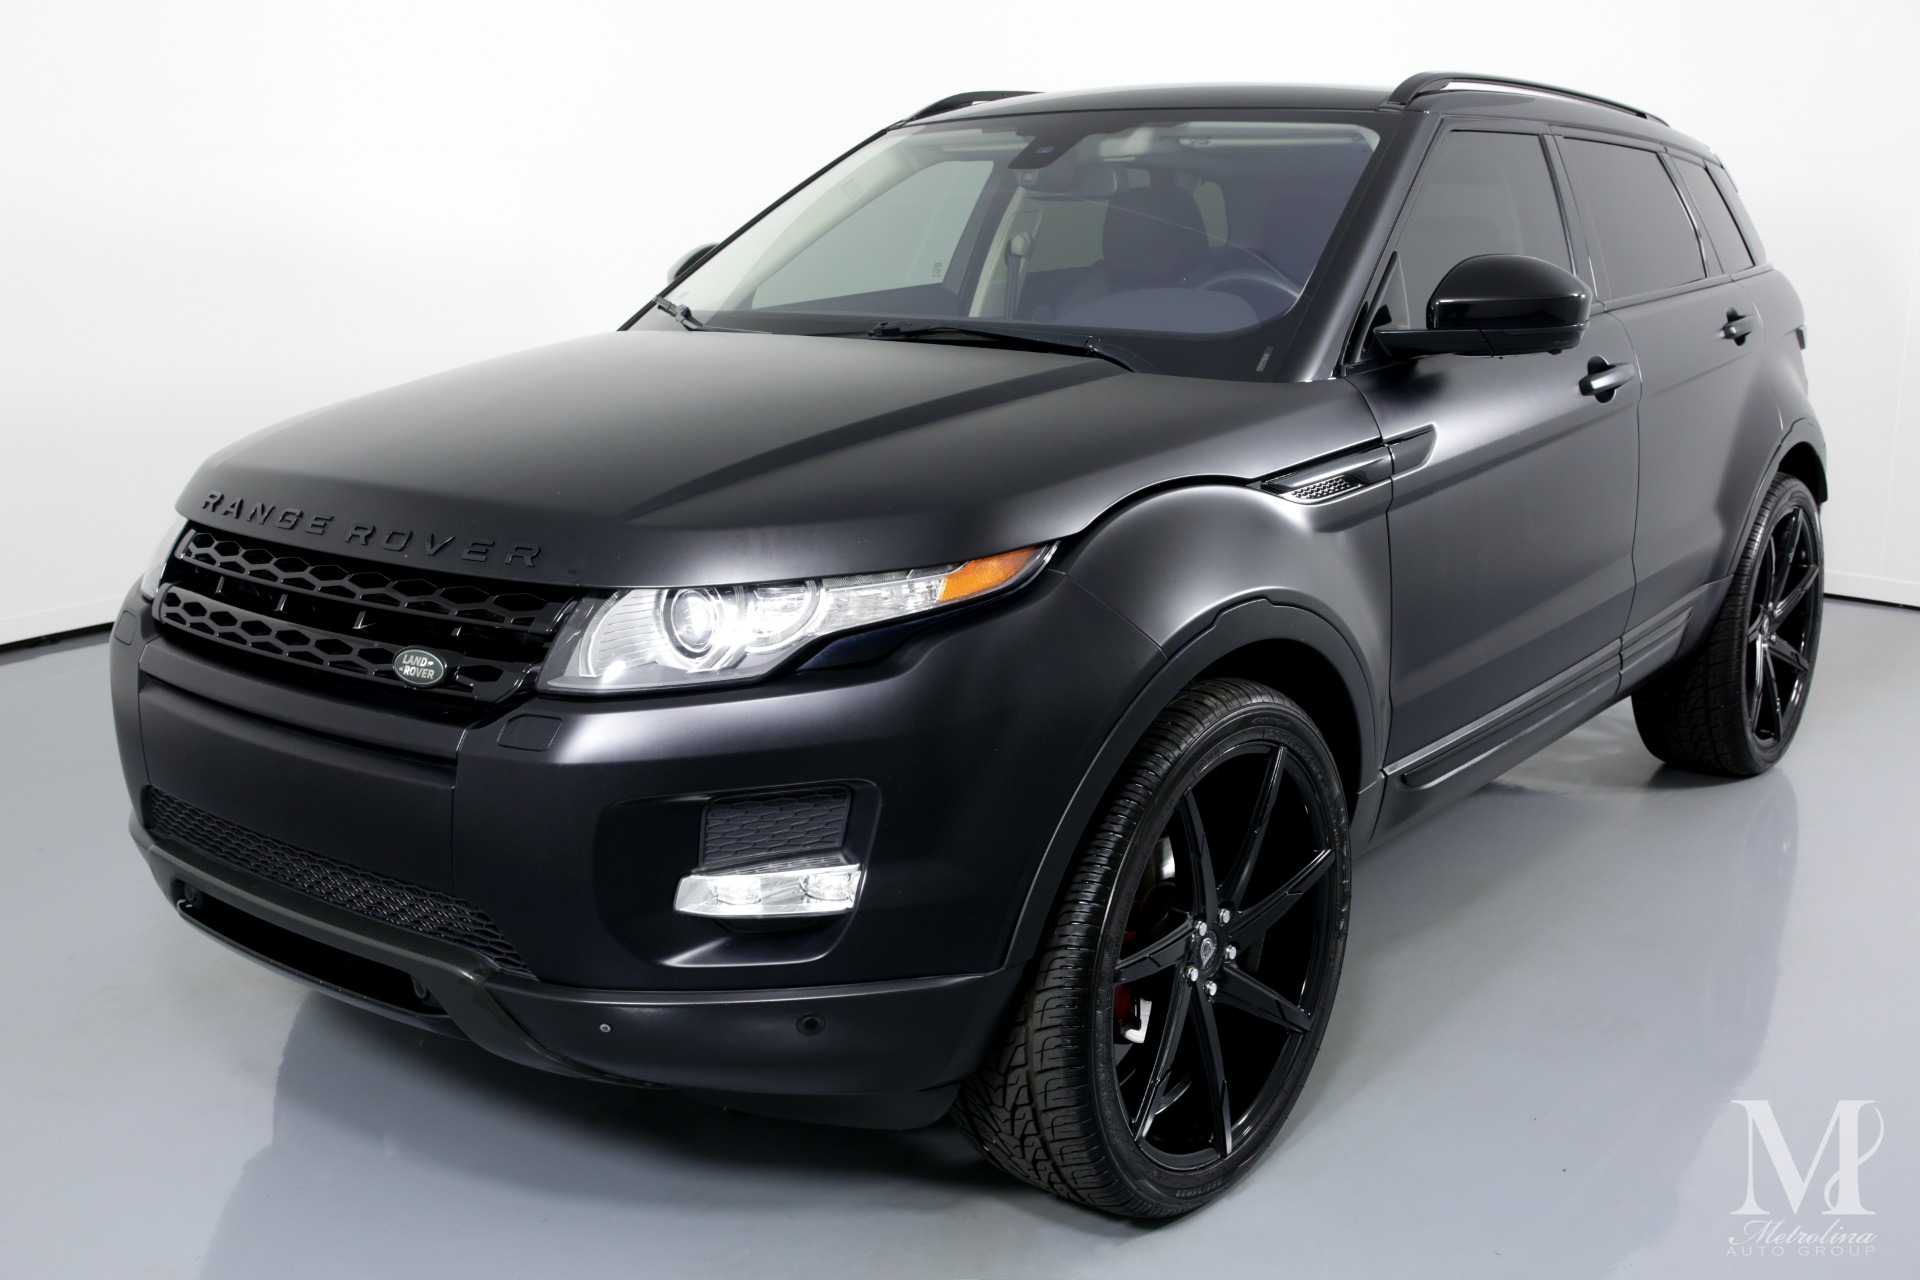 Used 2015 Land Rover Range Rover Evoque Pure Plus AWD 4dr SUV for sale $26,996 at Metrolina Auto Group in Charlotte NC 28217 - 4